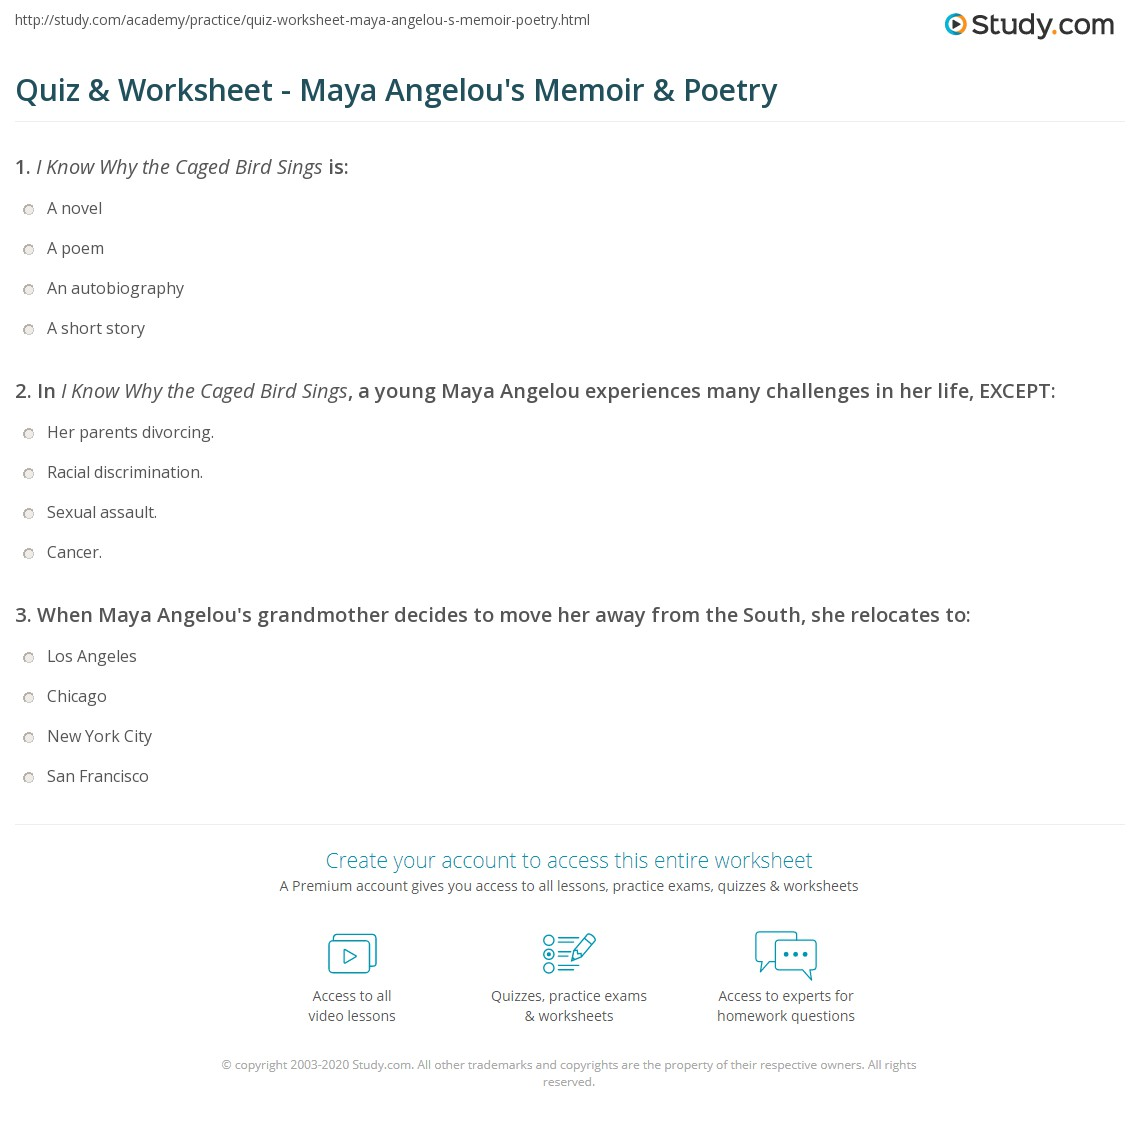 quiz worksheet a angelou s memoir poetry com print a angelou i know why the caged bird sings and poetry worksheet